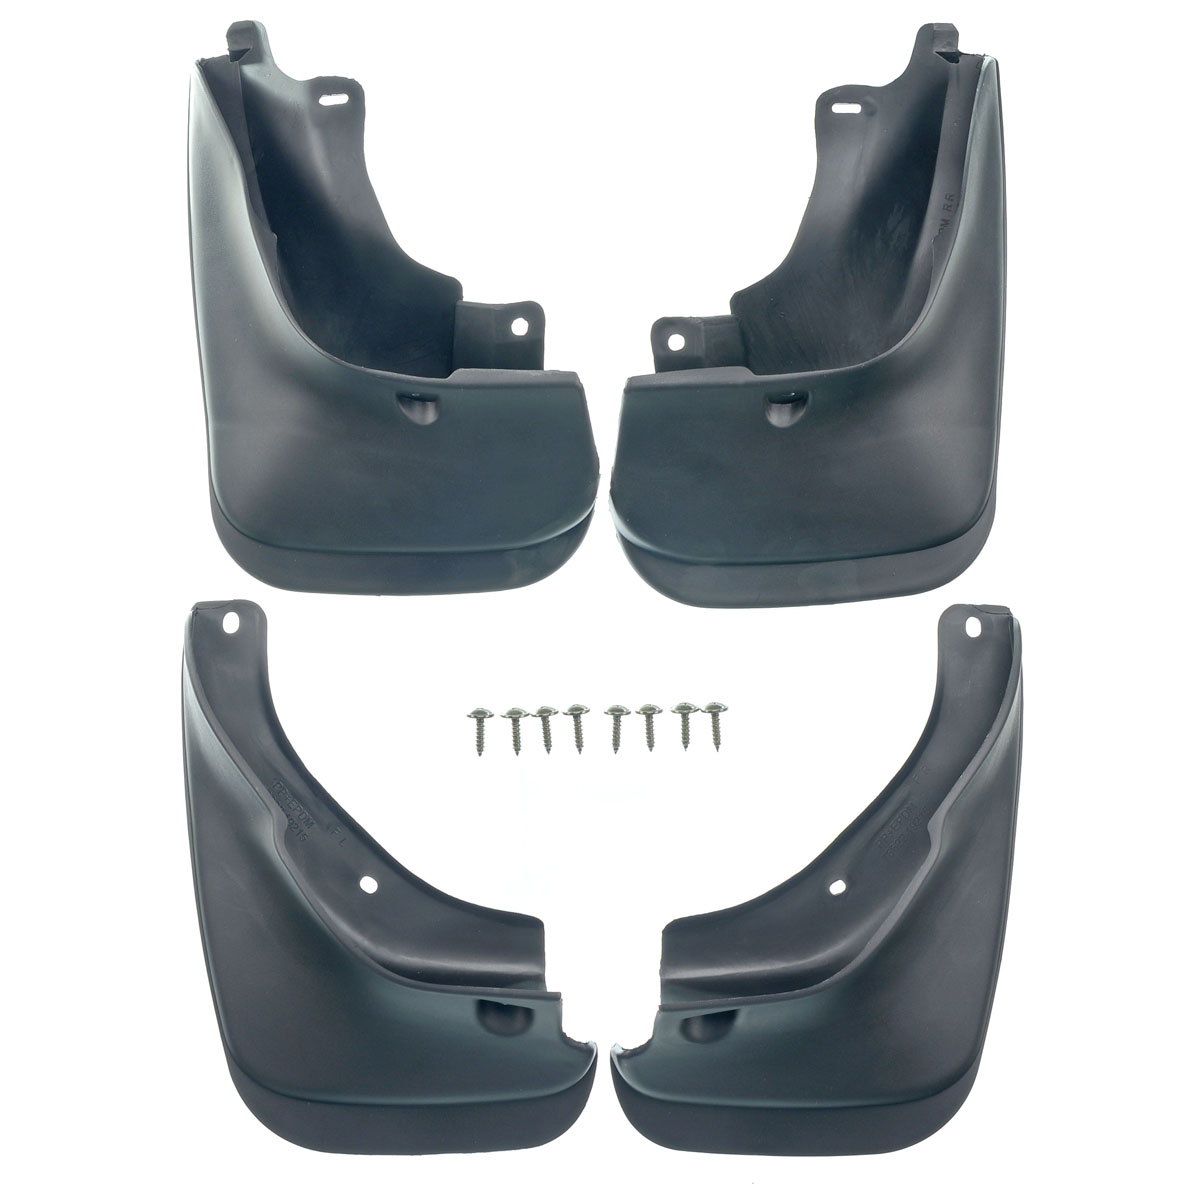 Set of 4 Front and Rear Mud Flaps Splash Guard for 1993-1997 Toyota Corolla Wagon